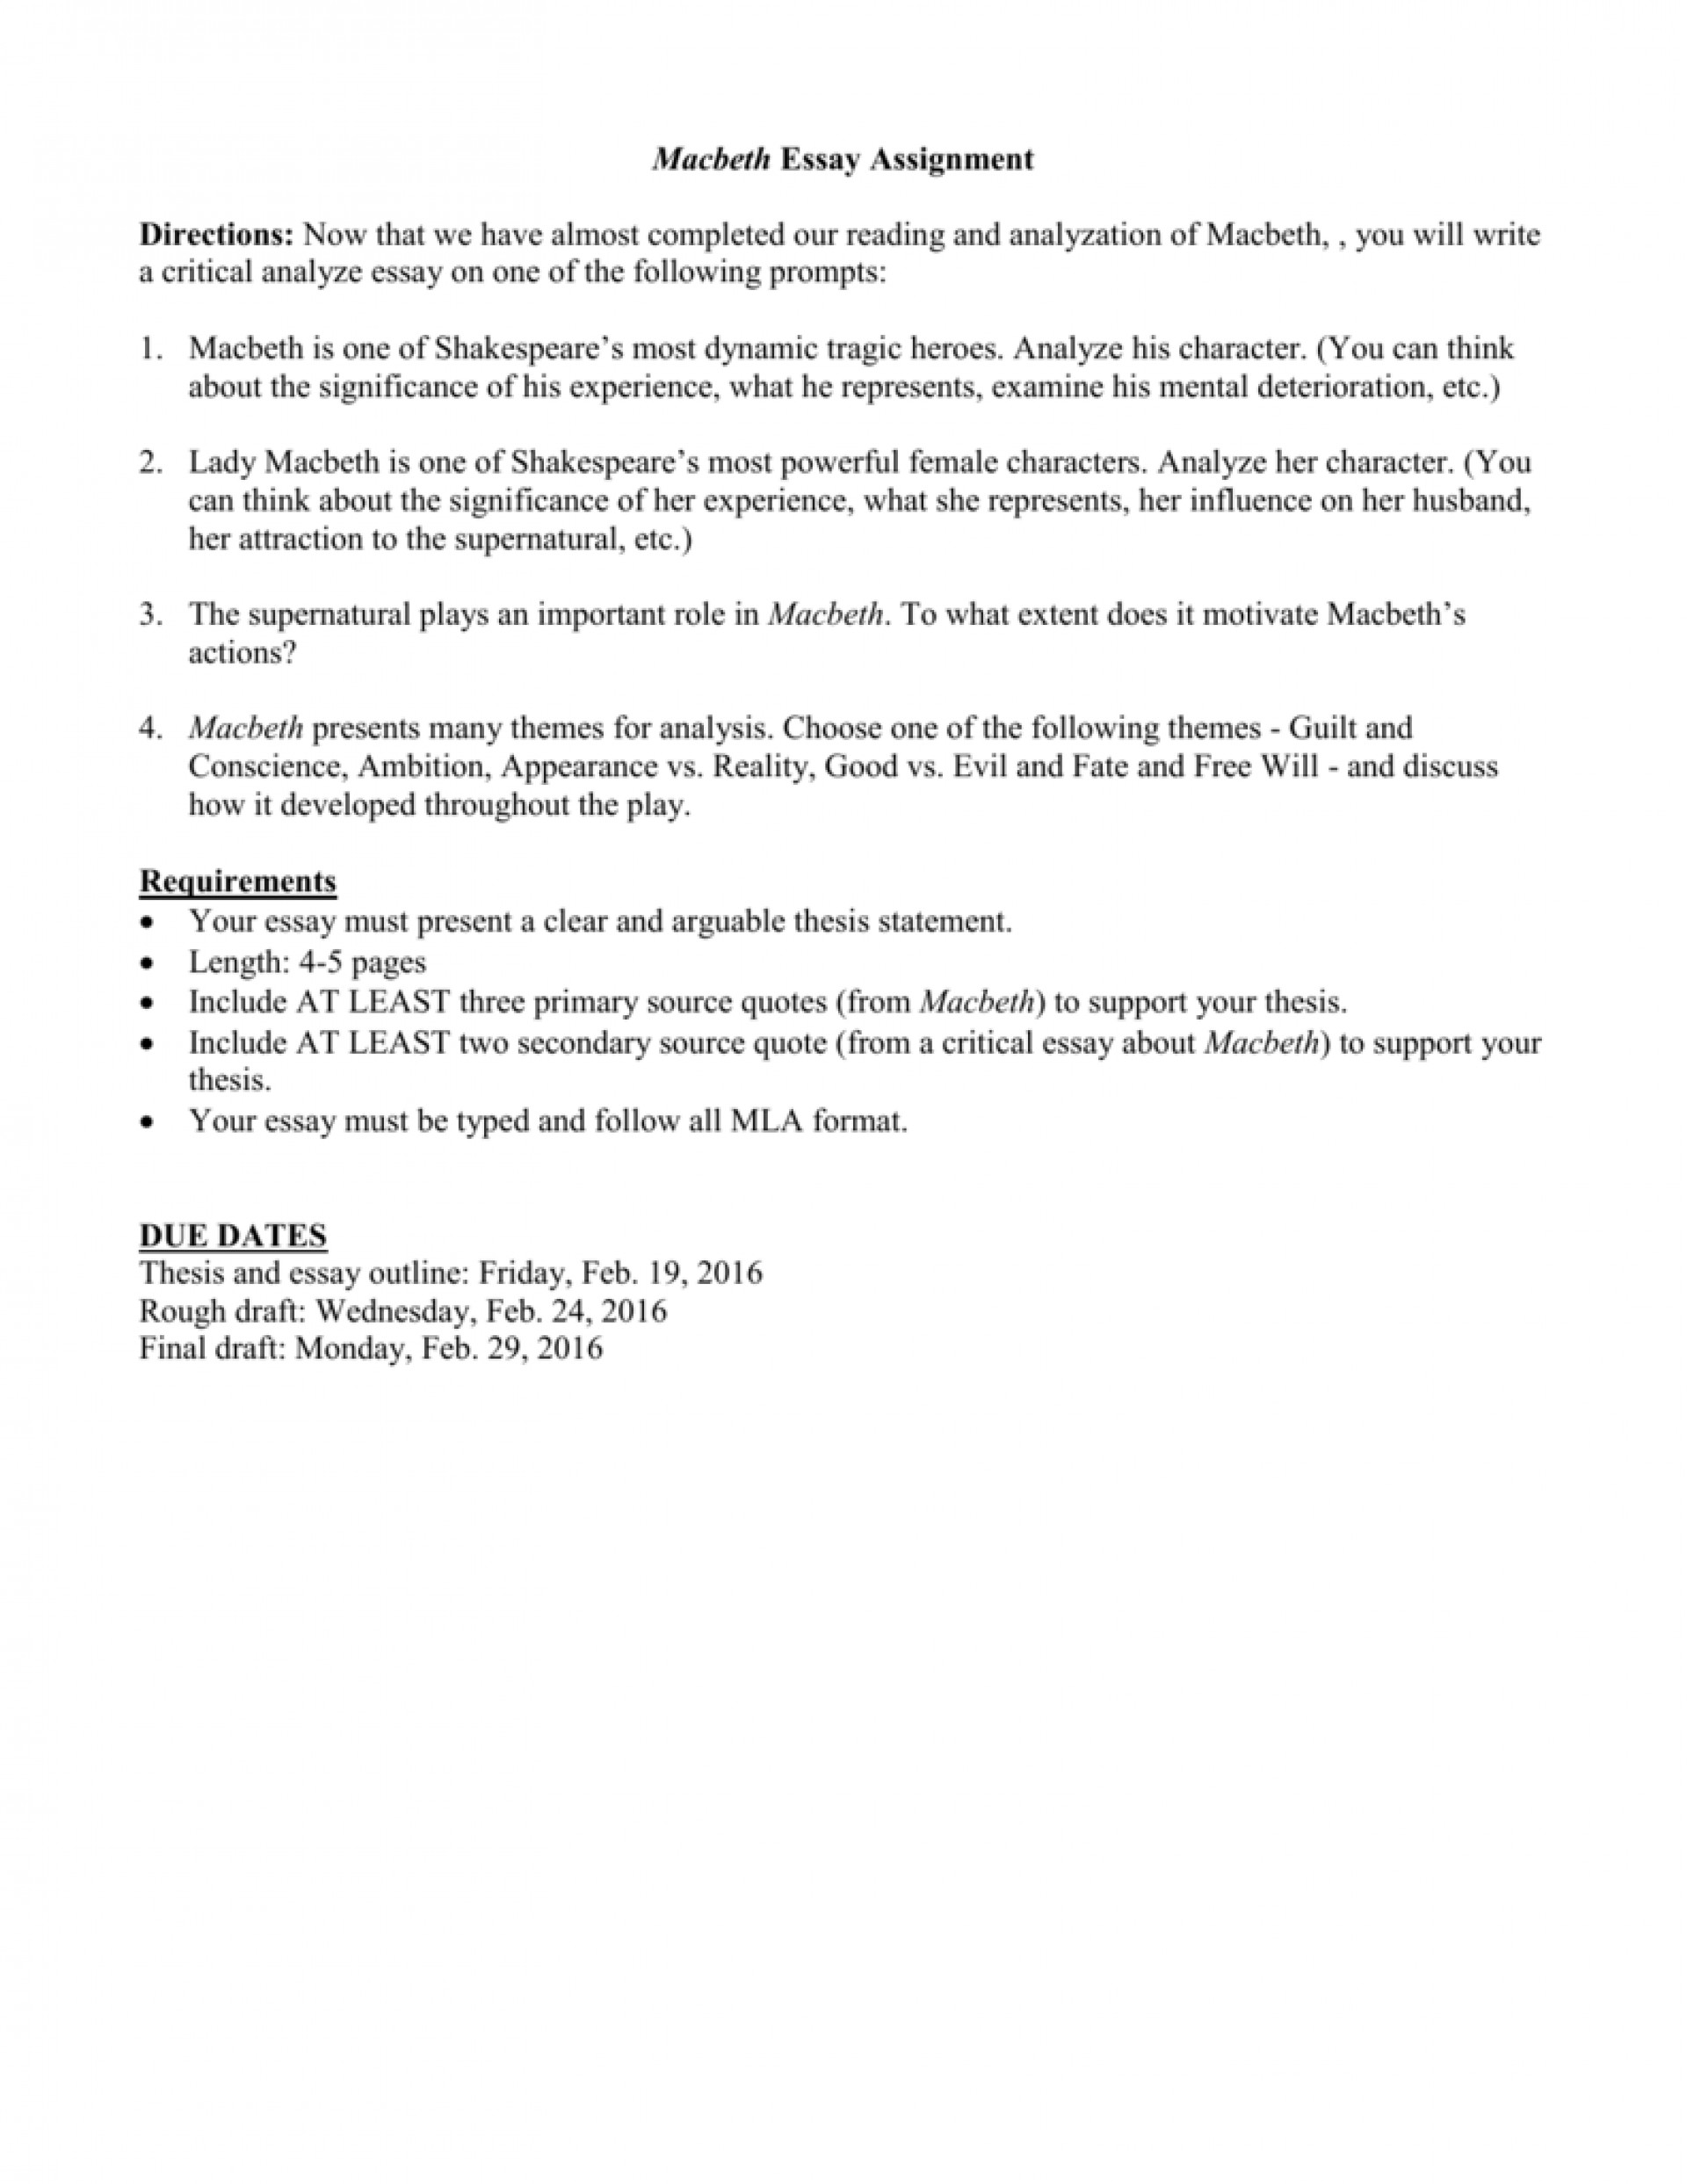 011 Essay On Macbeth Example 008018496 1 Marvelous And Lady Macbeth's Relationship Literary As A Tragic Hero Plan 1920